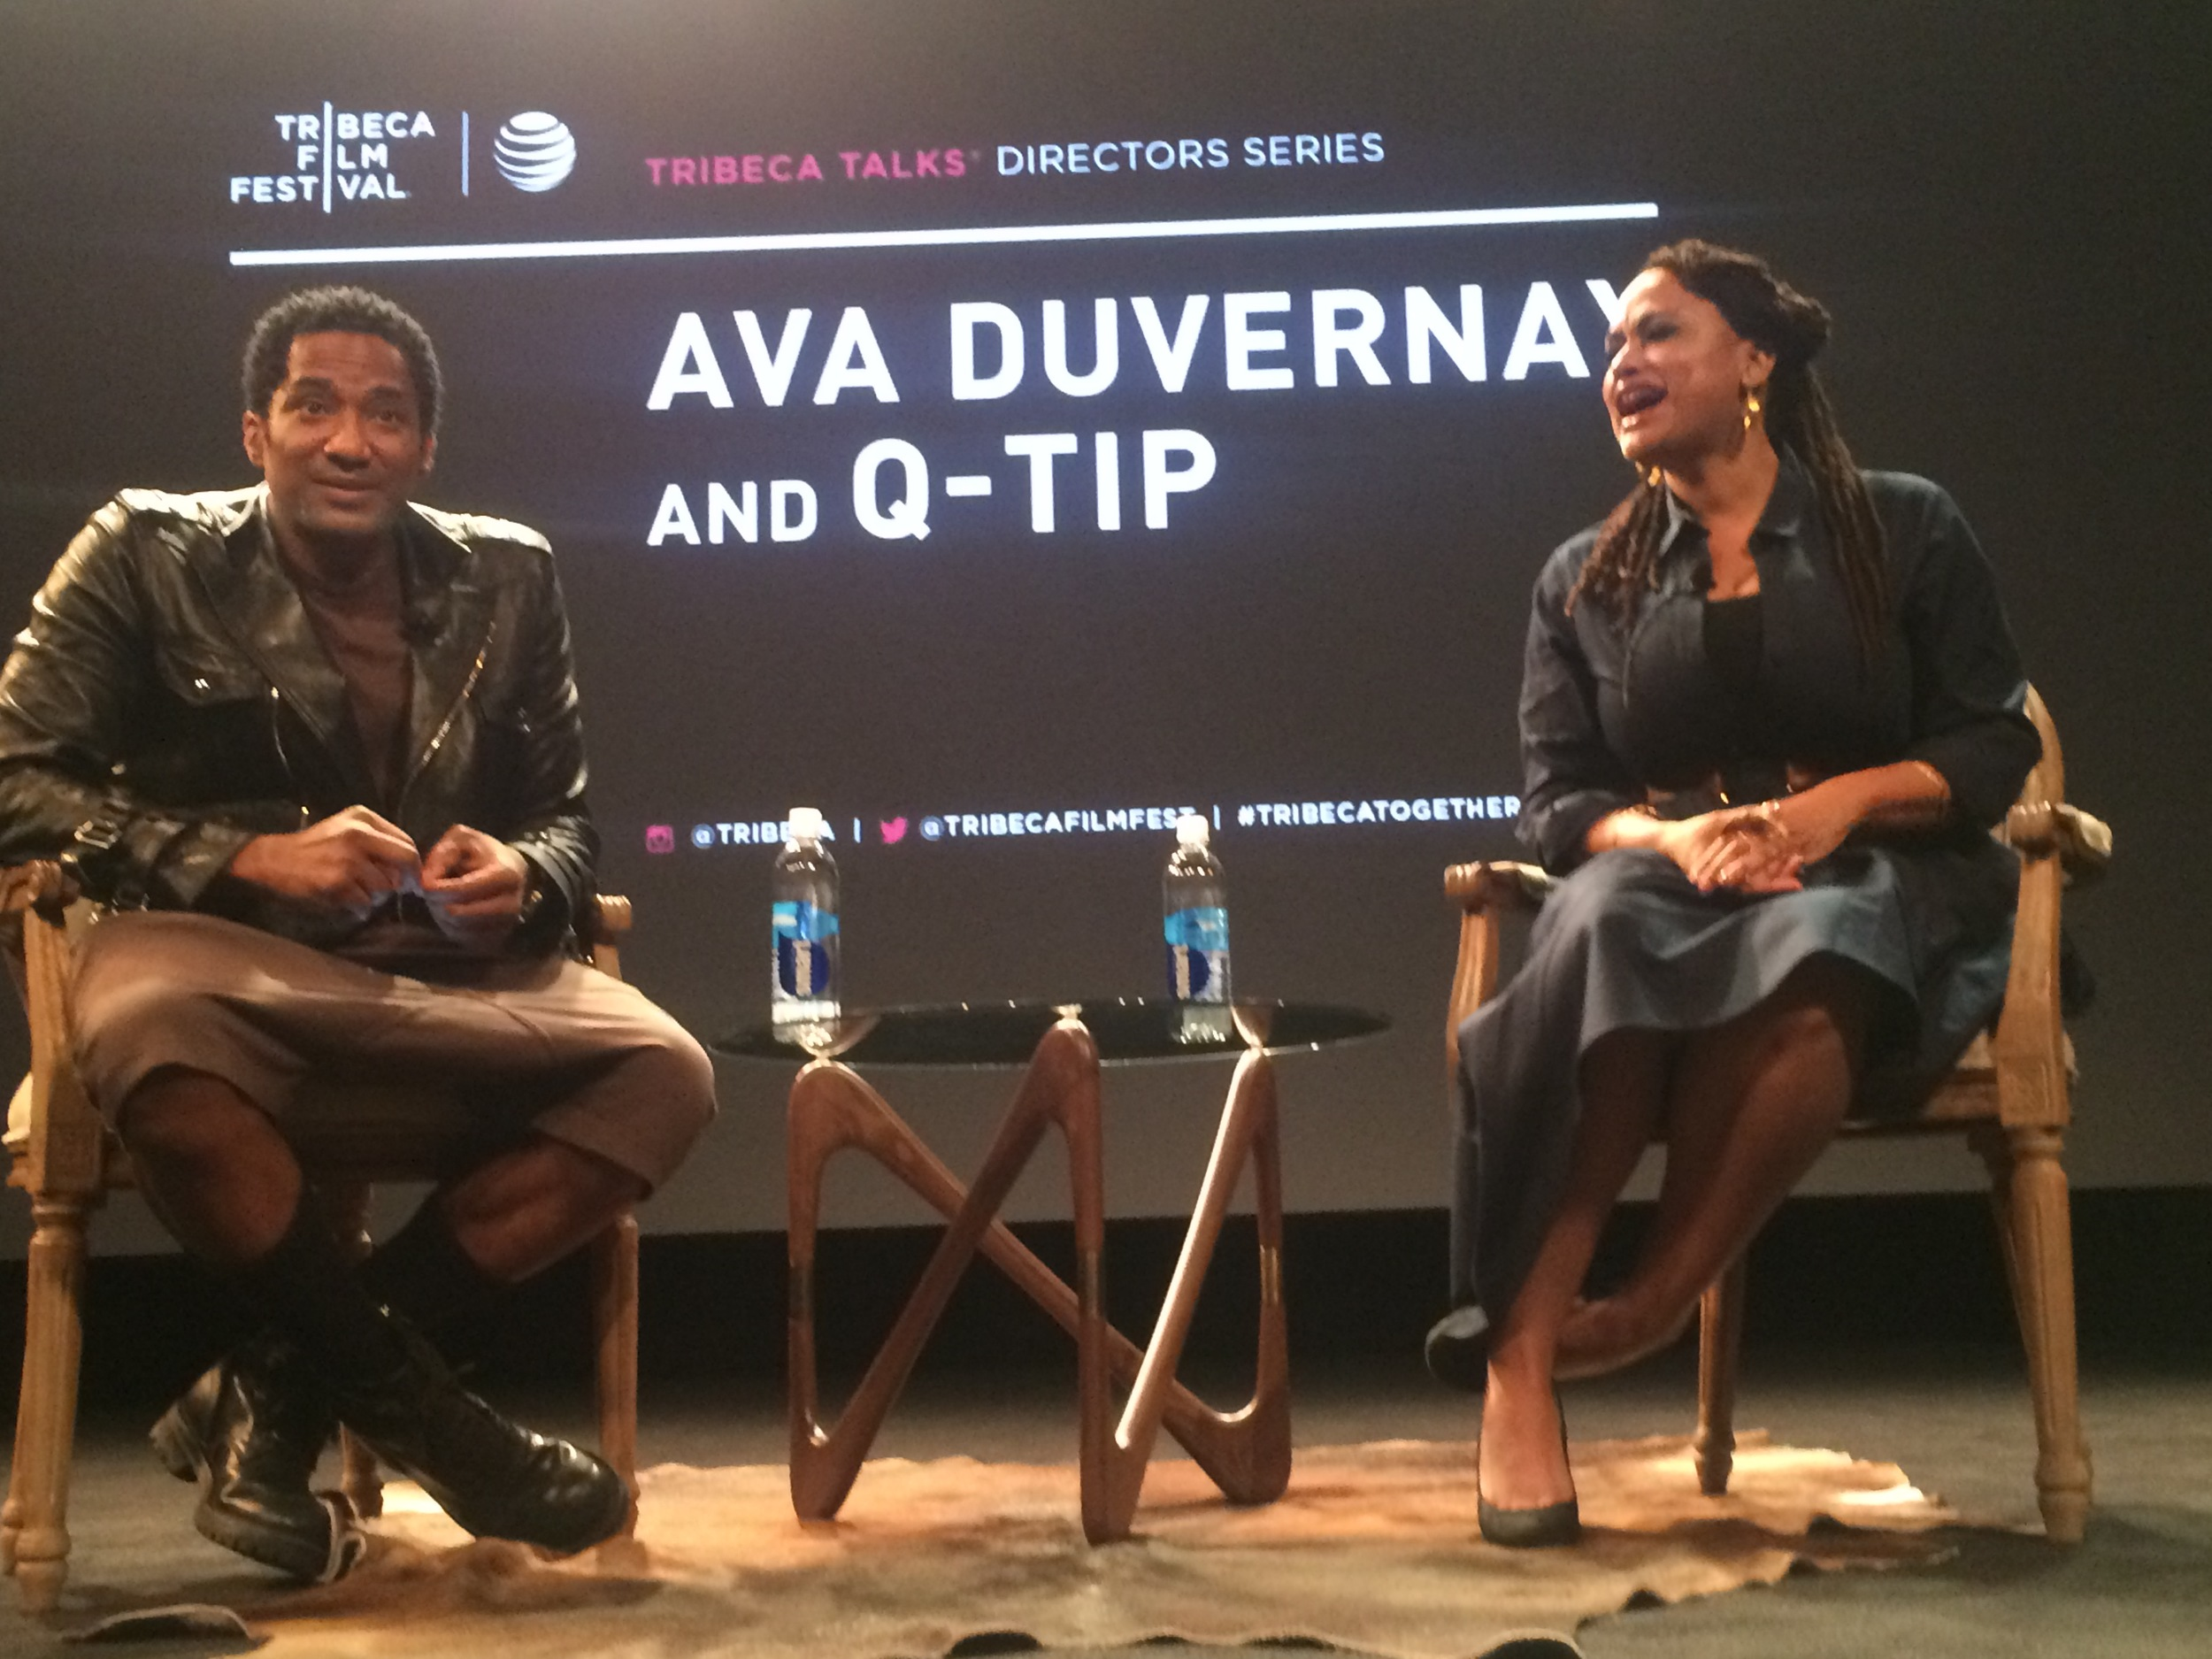 Qtip and Director Ava DuVernay